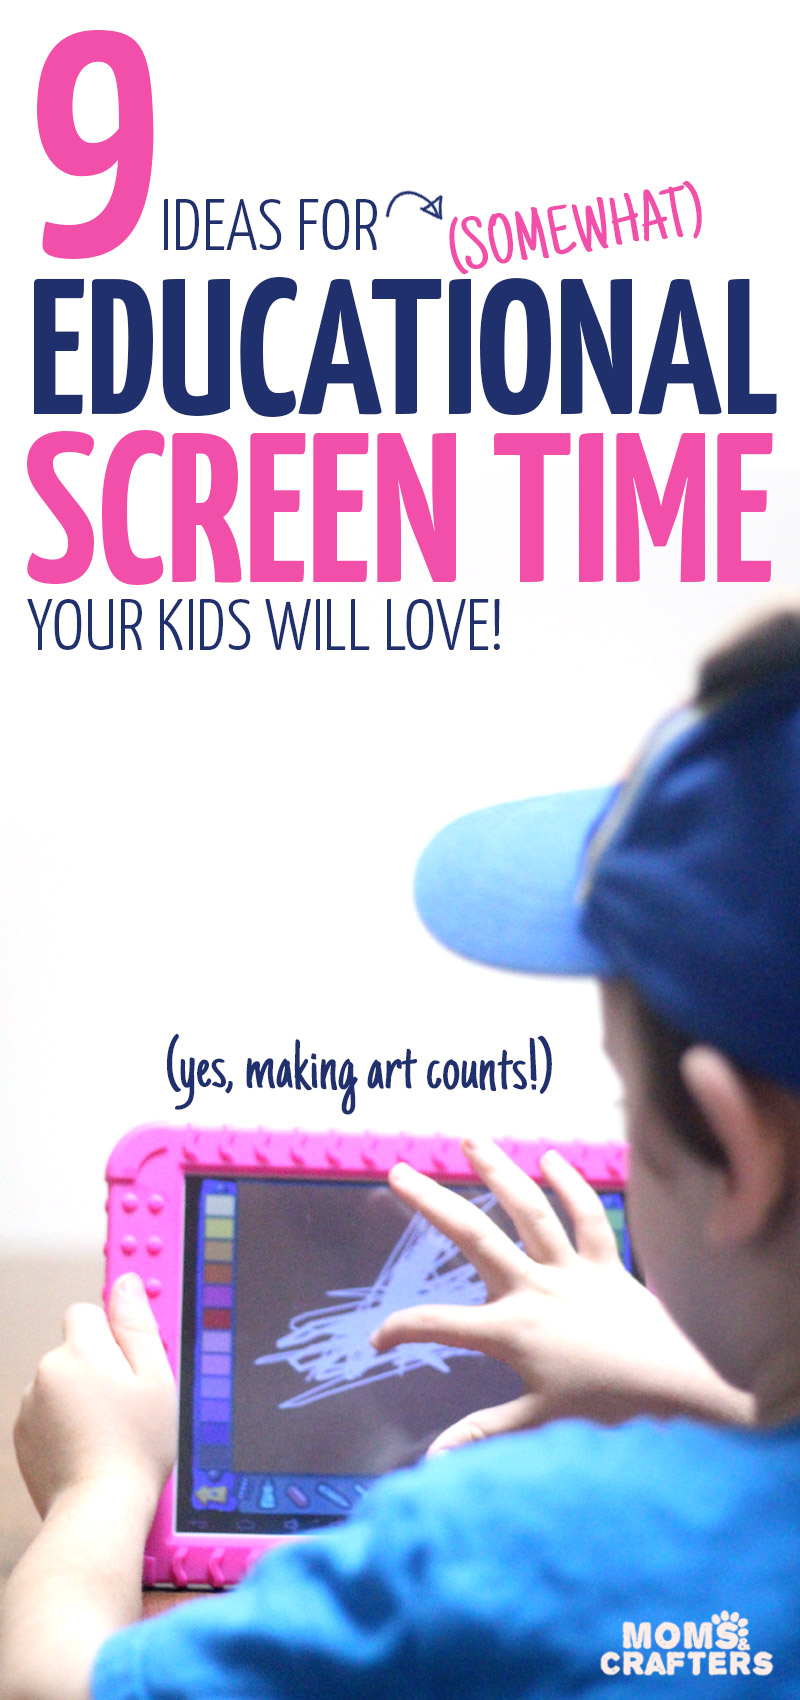 These practical ideas for educational screen time will make your kid want to learn! YEs, these are totally kid-approved for kids of all ages including preschool, kindergarten, all the way up to teens and tweens! They include learning apps, online courses and creative ideas - all of which will make great boredom busters while granting mom her sanity back :)